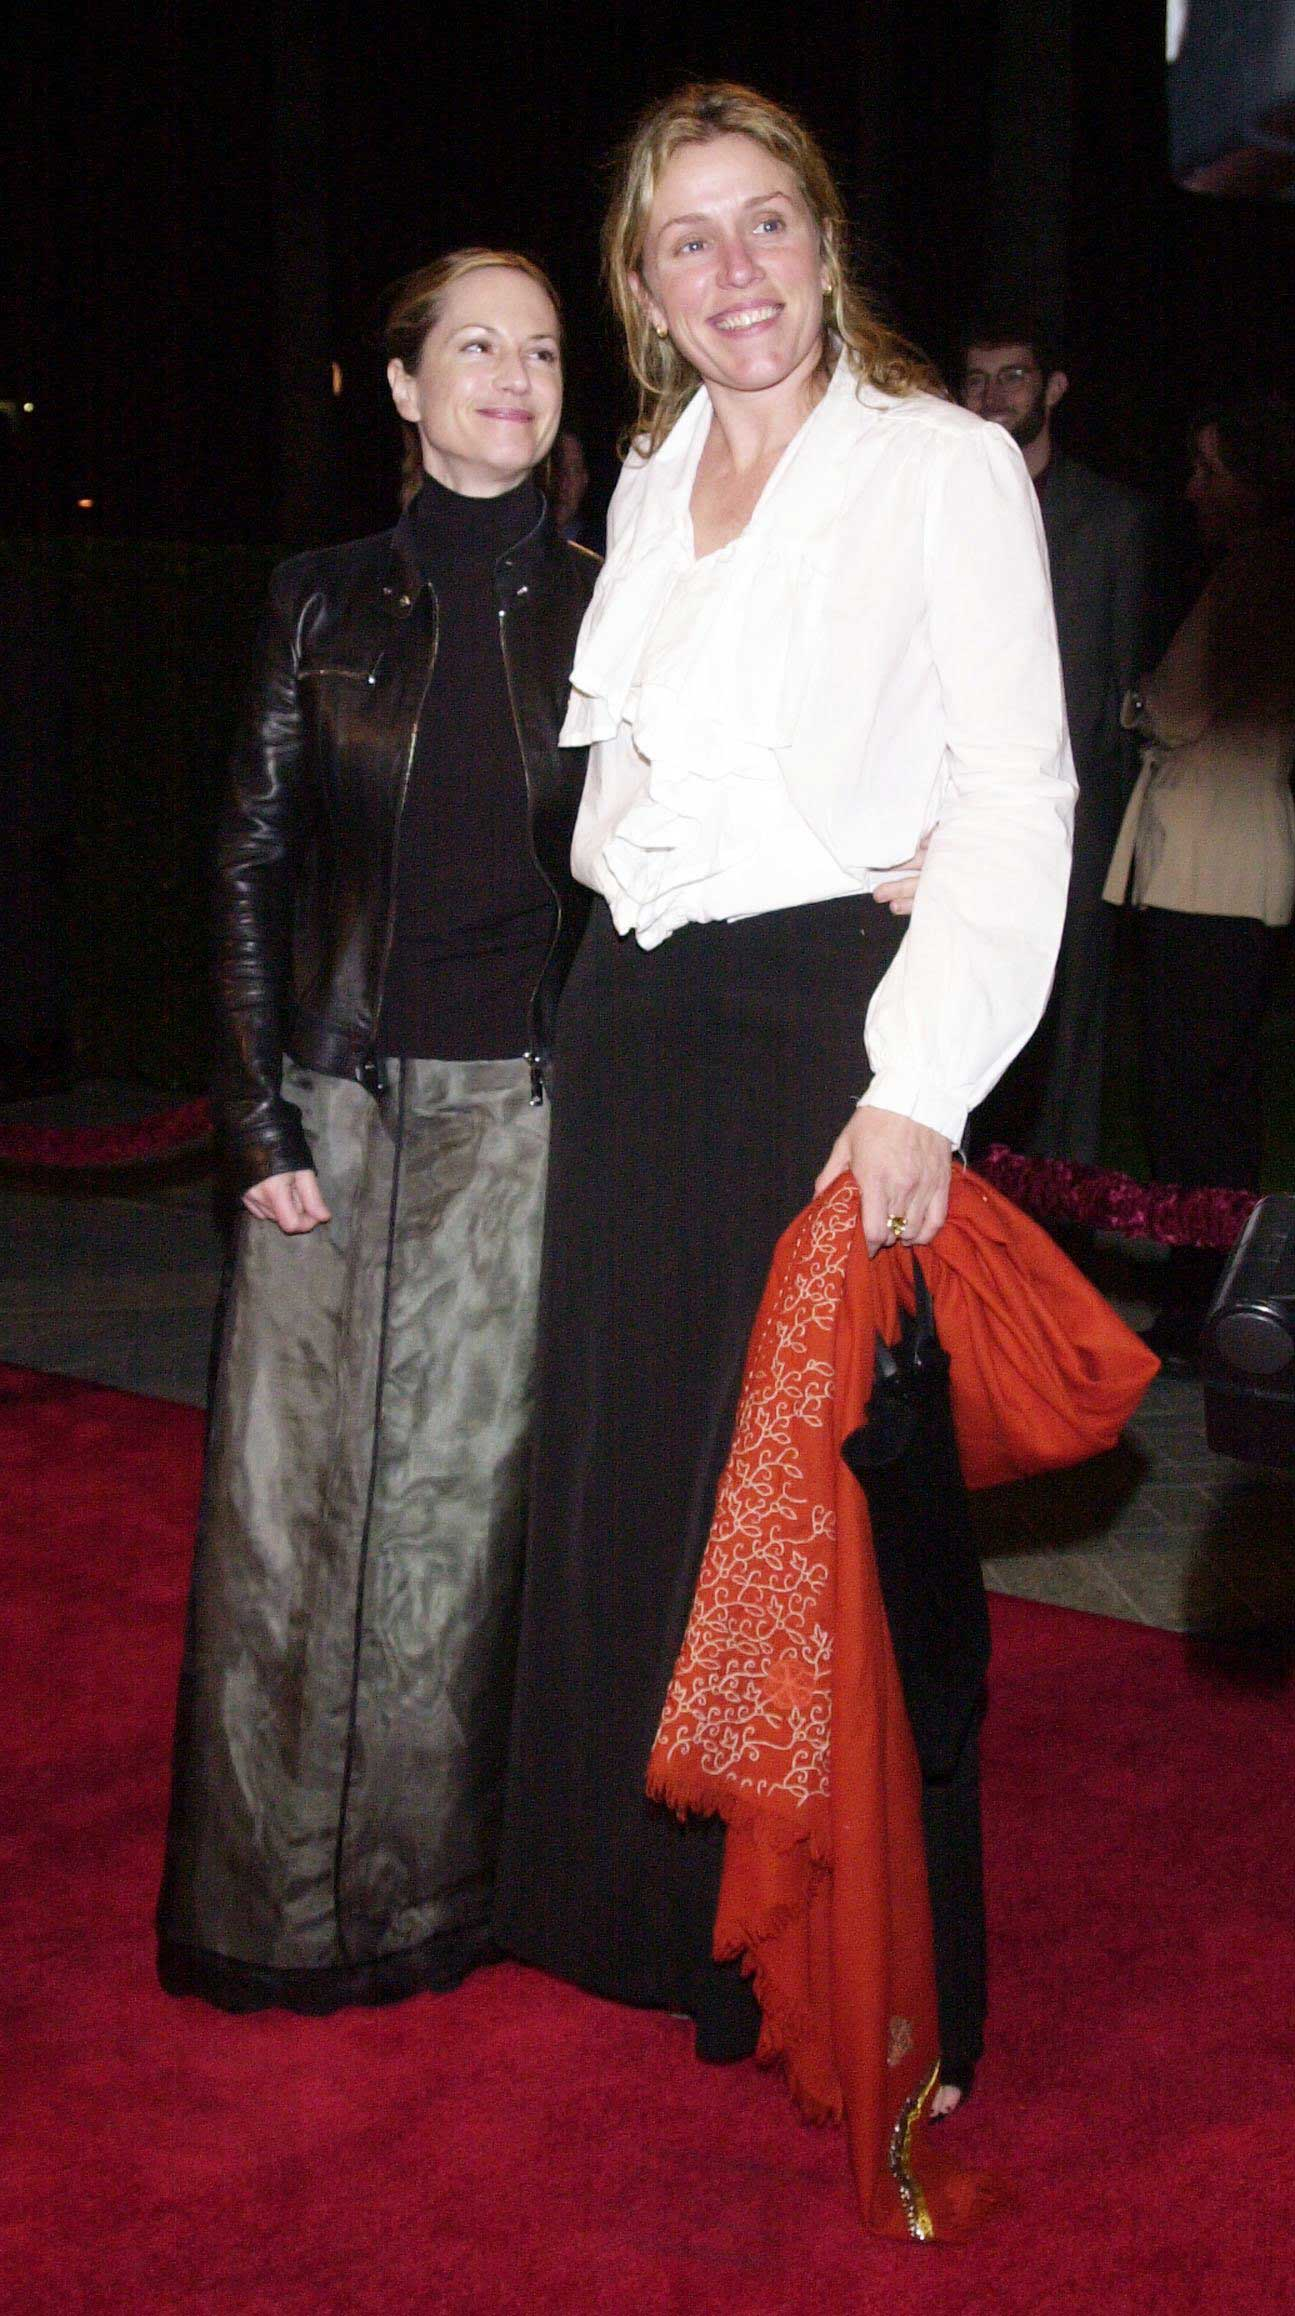 Frances McDormand and Holly Hunter met at drama school and lived together.